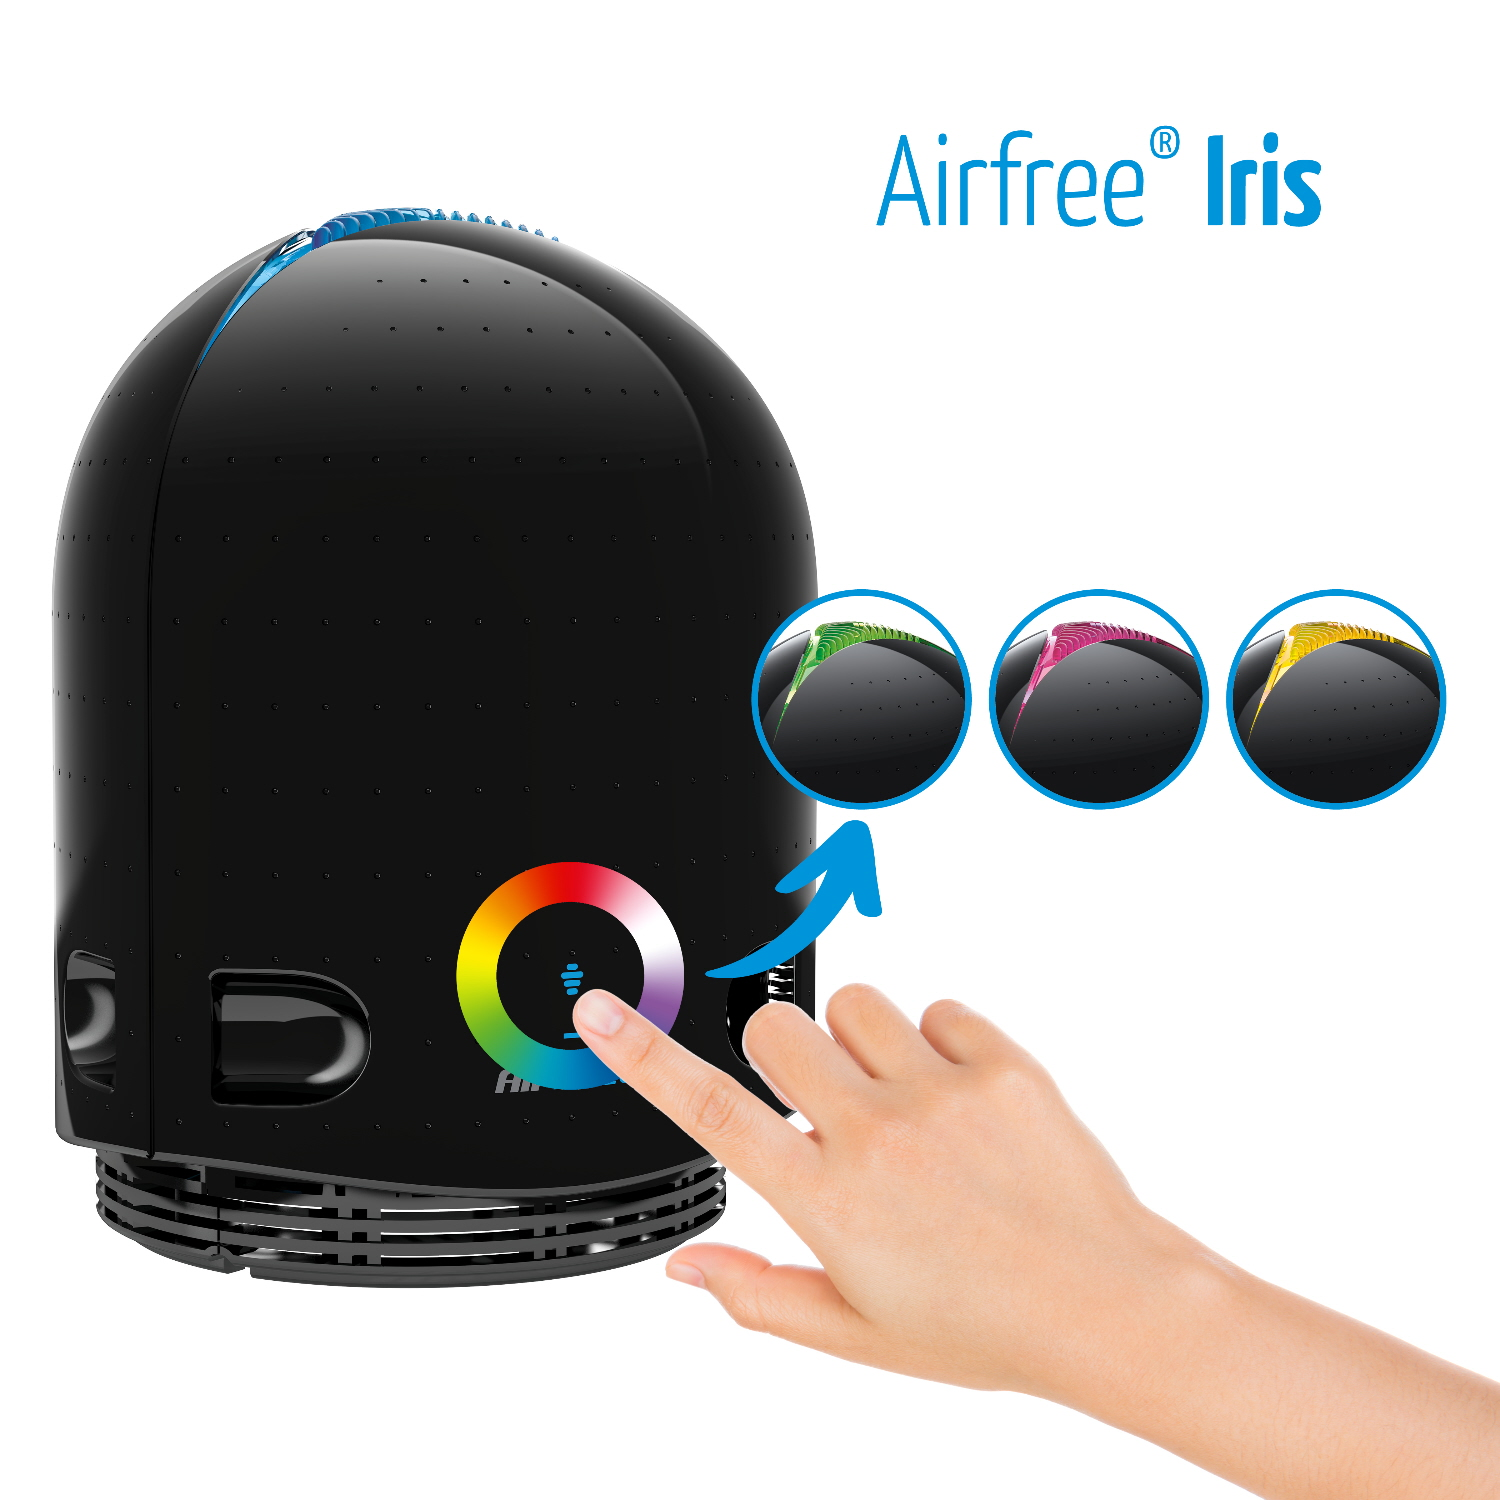 Airfree Iris Air Purifier 650 Sq Ft  Silent Sterilizing Thermodynamic System-Airfree_Iris_colors_change.jpg